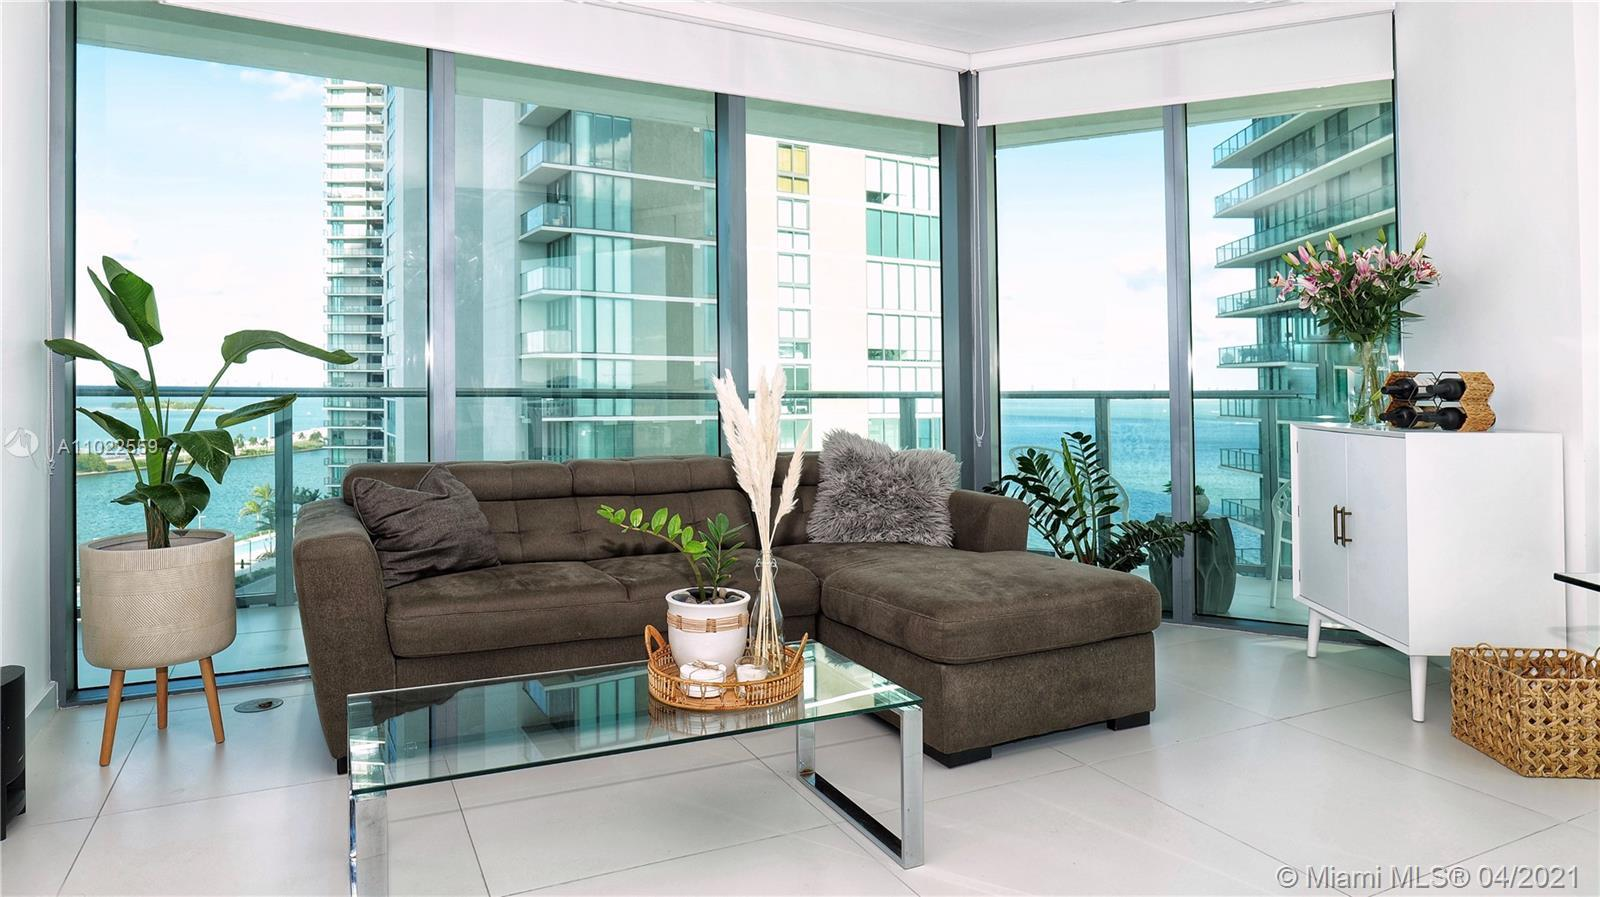 Gorgeous 3 Bedrooms and 2 Bathrooms, with a huge and amazing wrap-around balcony, Paraiso Bayviews h